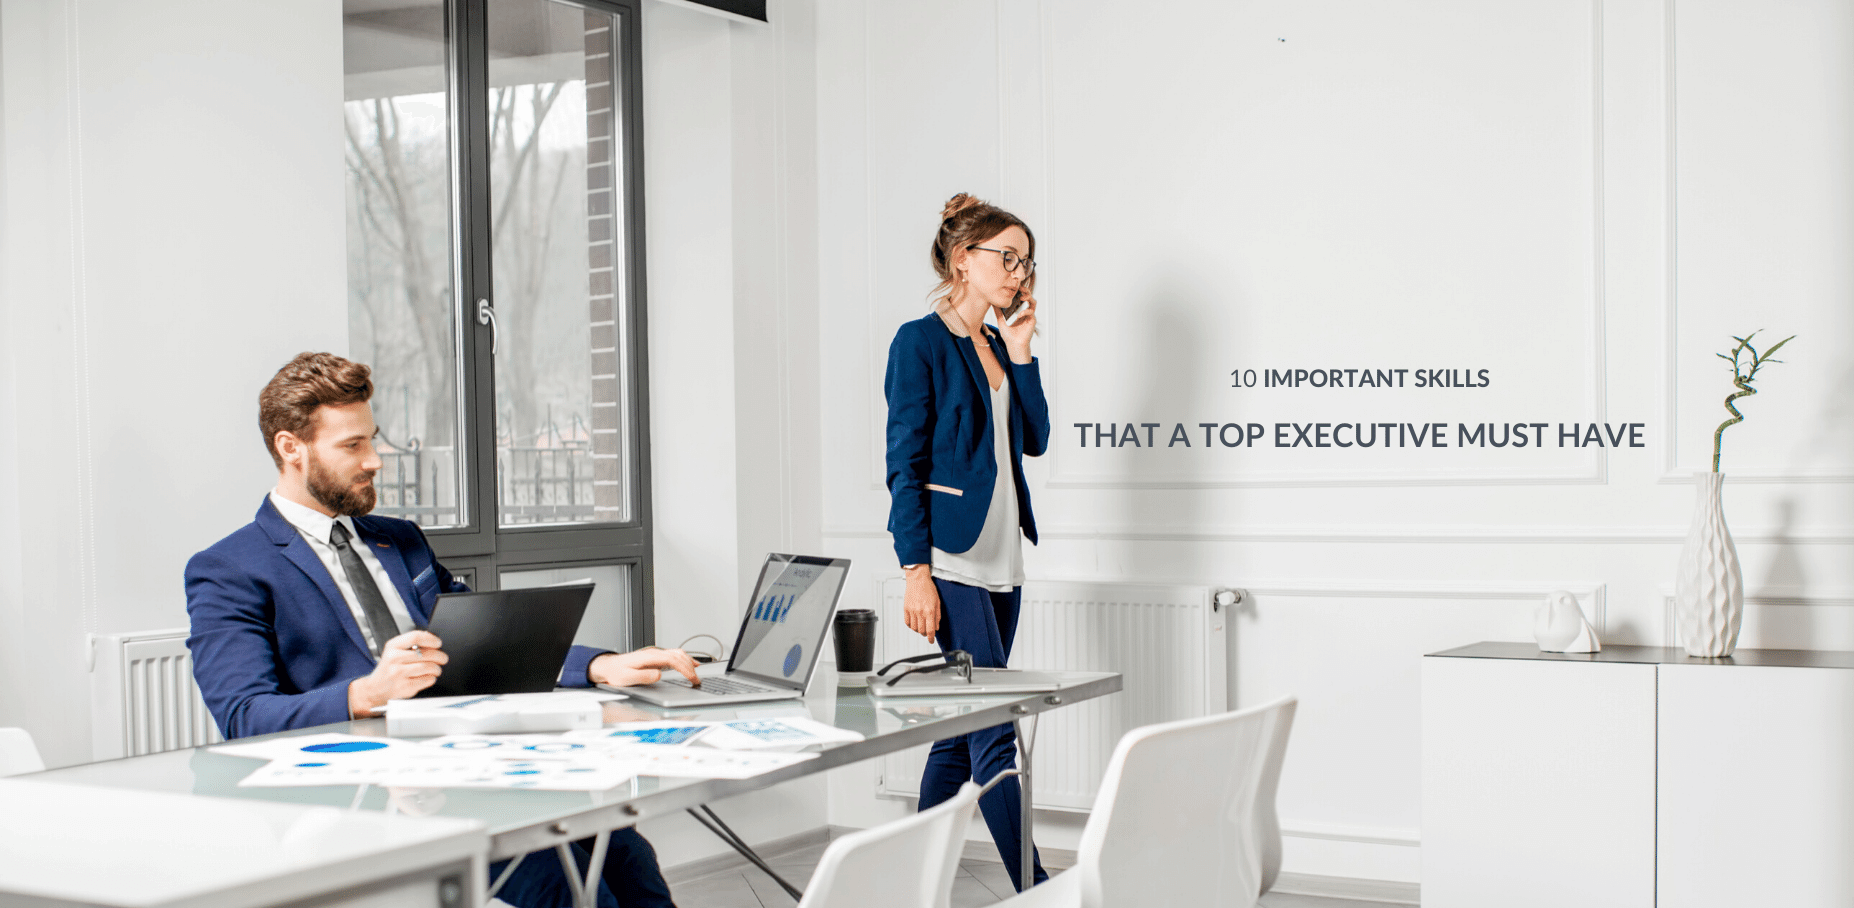 10 important skills that a top executive must have